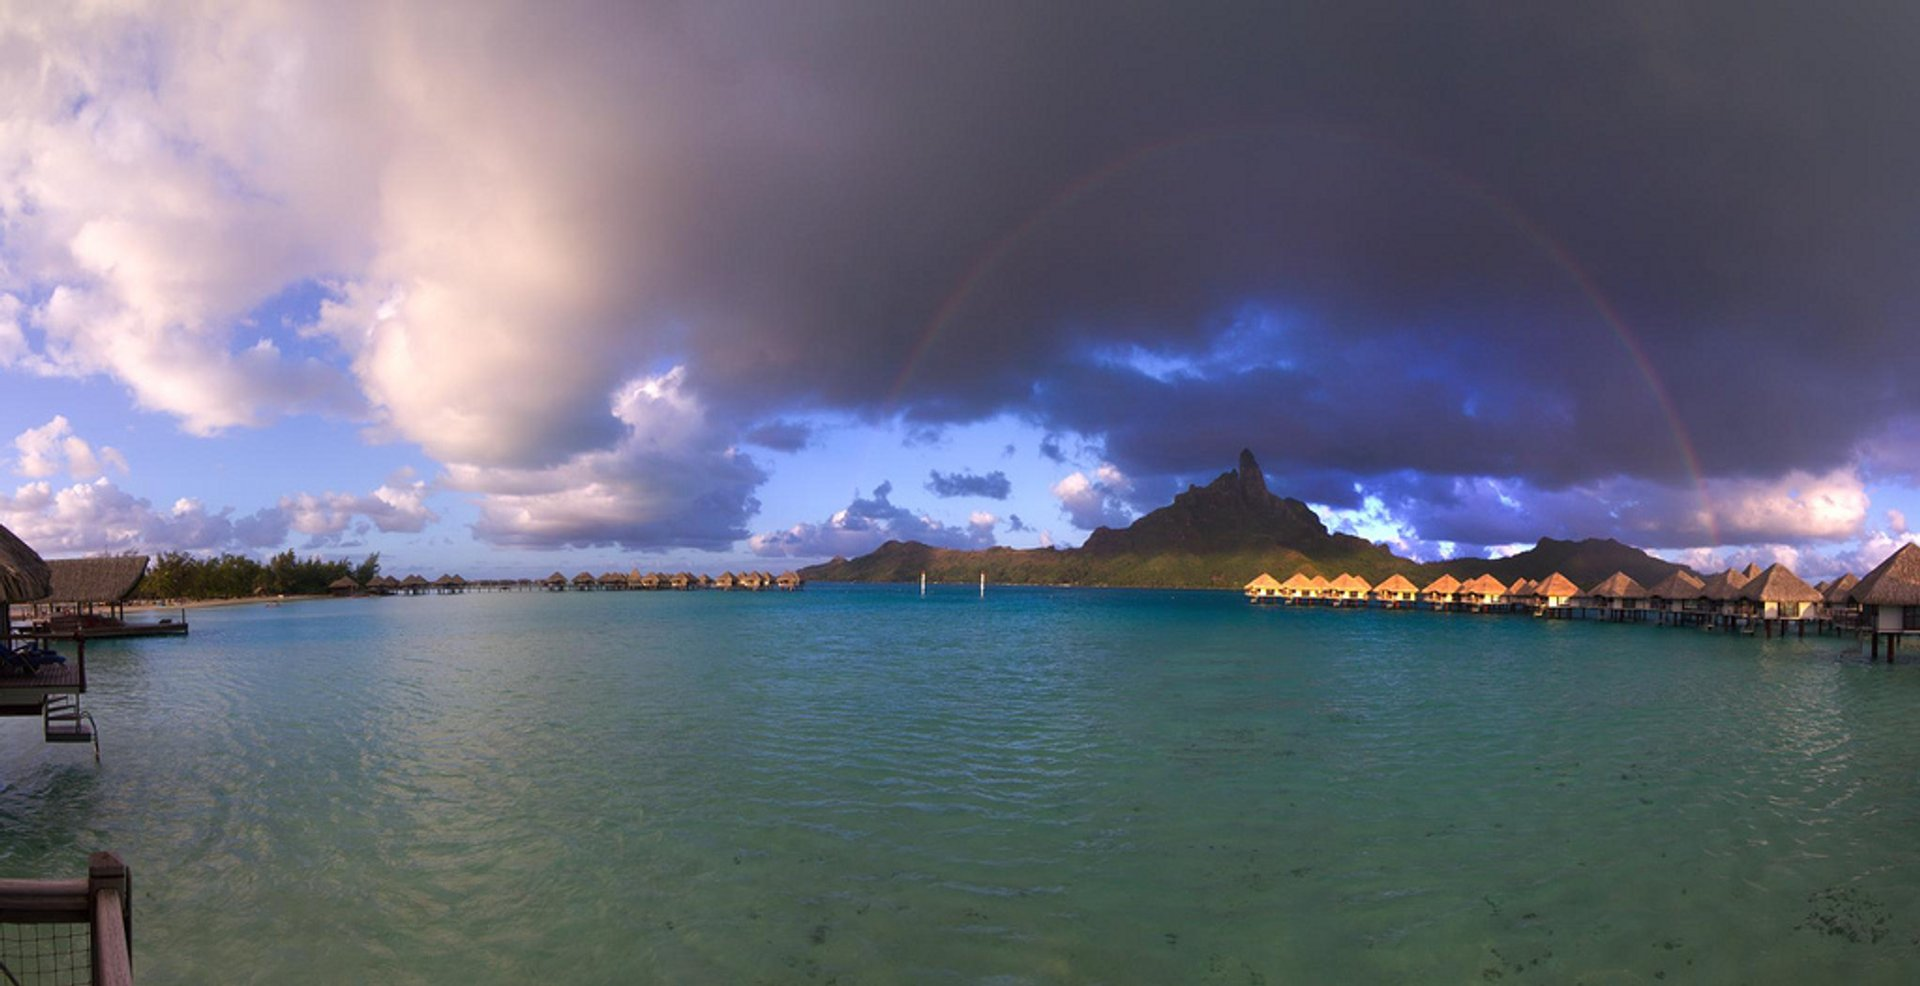 Summer: Wet Season in Bora Bora 2020 - Best Time